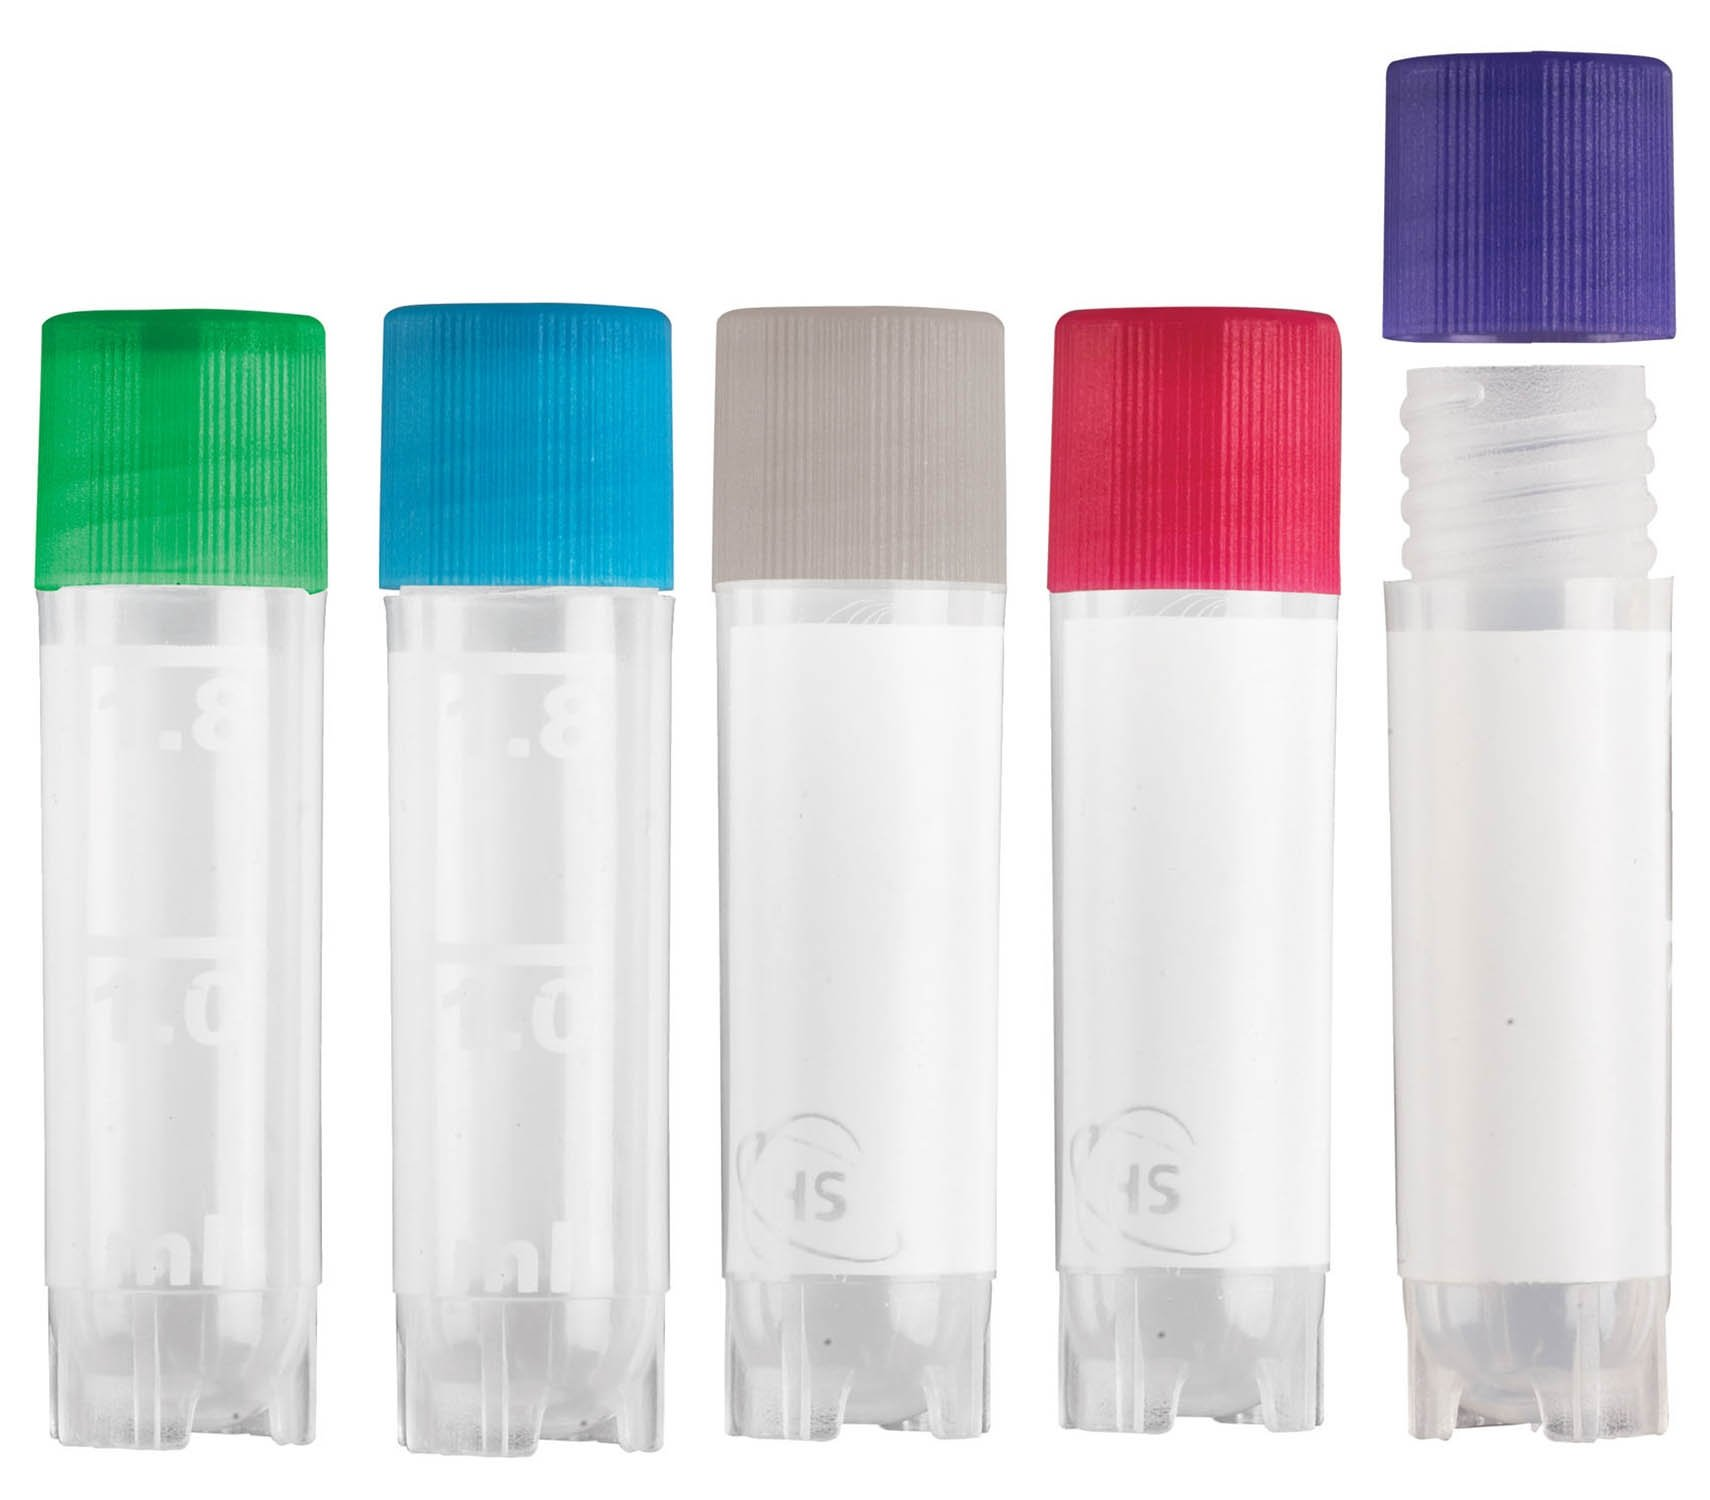 True North Cryogenic Sample Vial 2.0 mL with Assorted Lid Colors (BACKORDER UNTIL 11/08/2021)